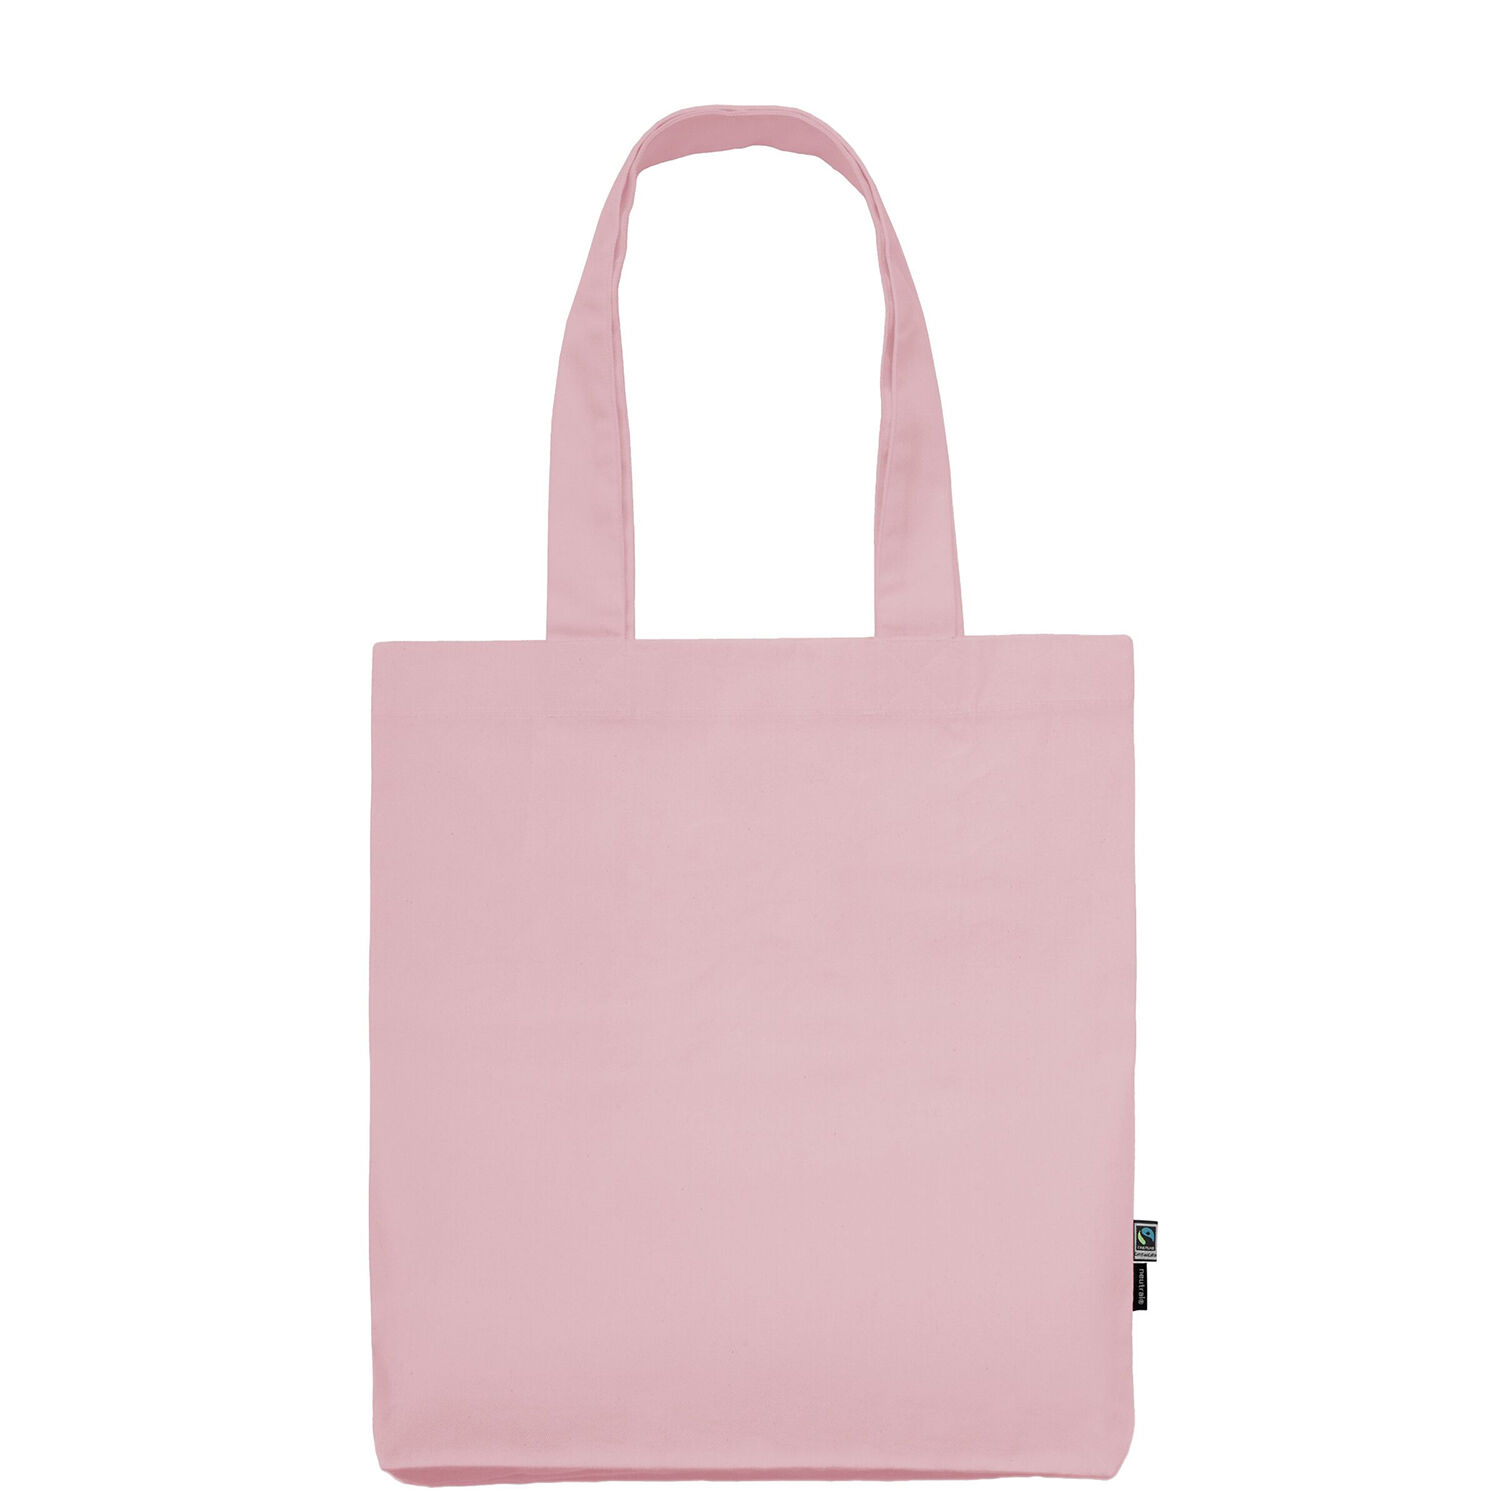 Neutral Brand Organic Twill Tote Bag in pink